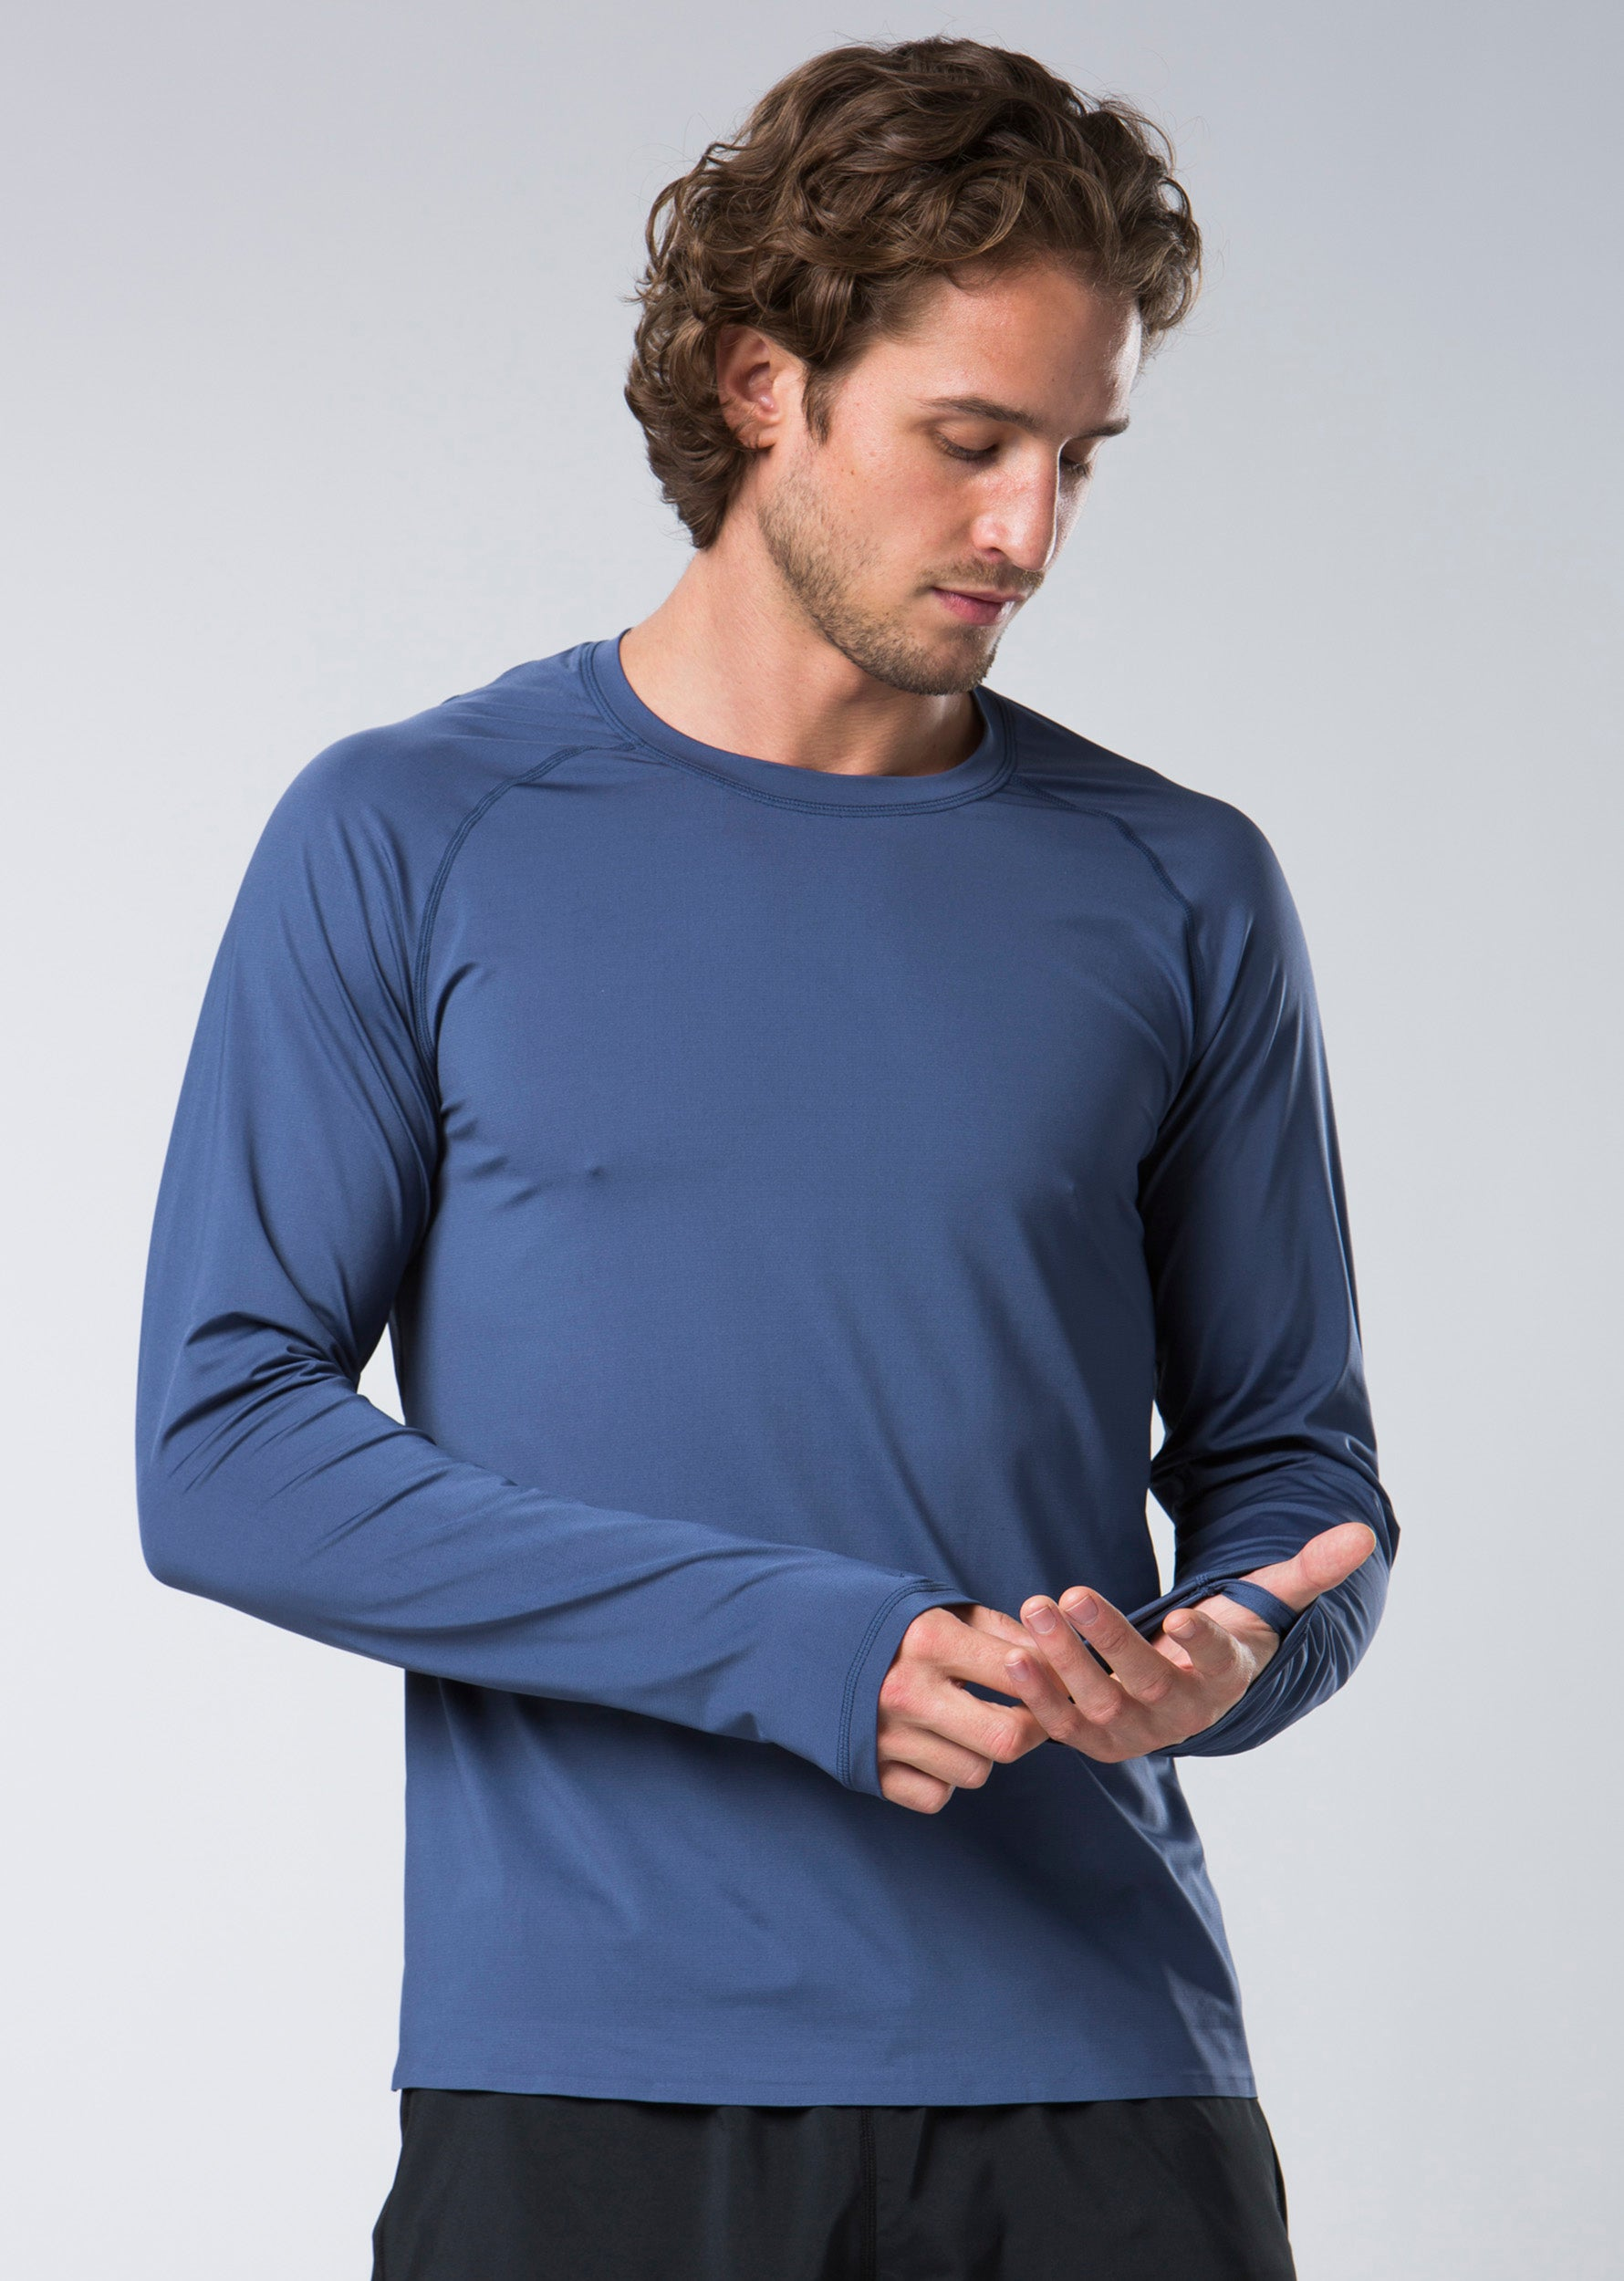 Ascent Long Sleeve Top - Nightshadow